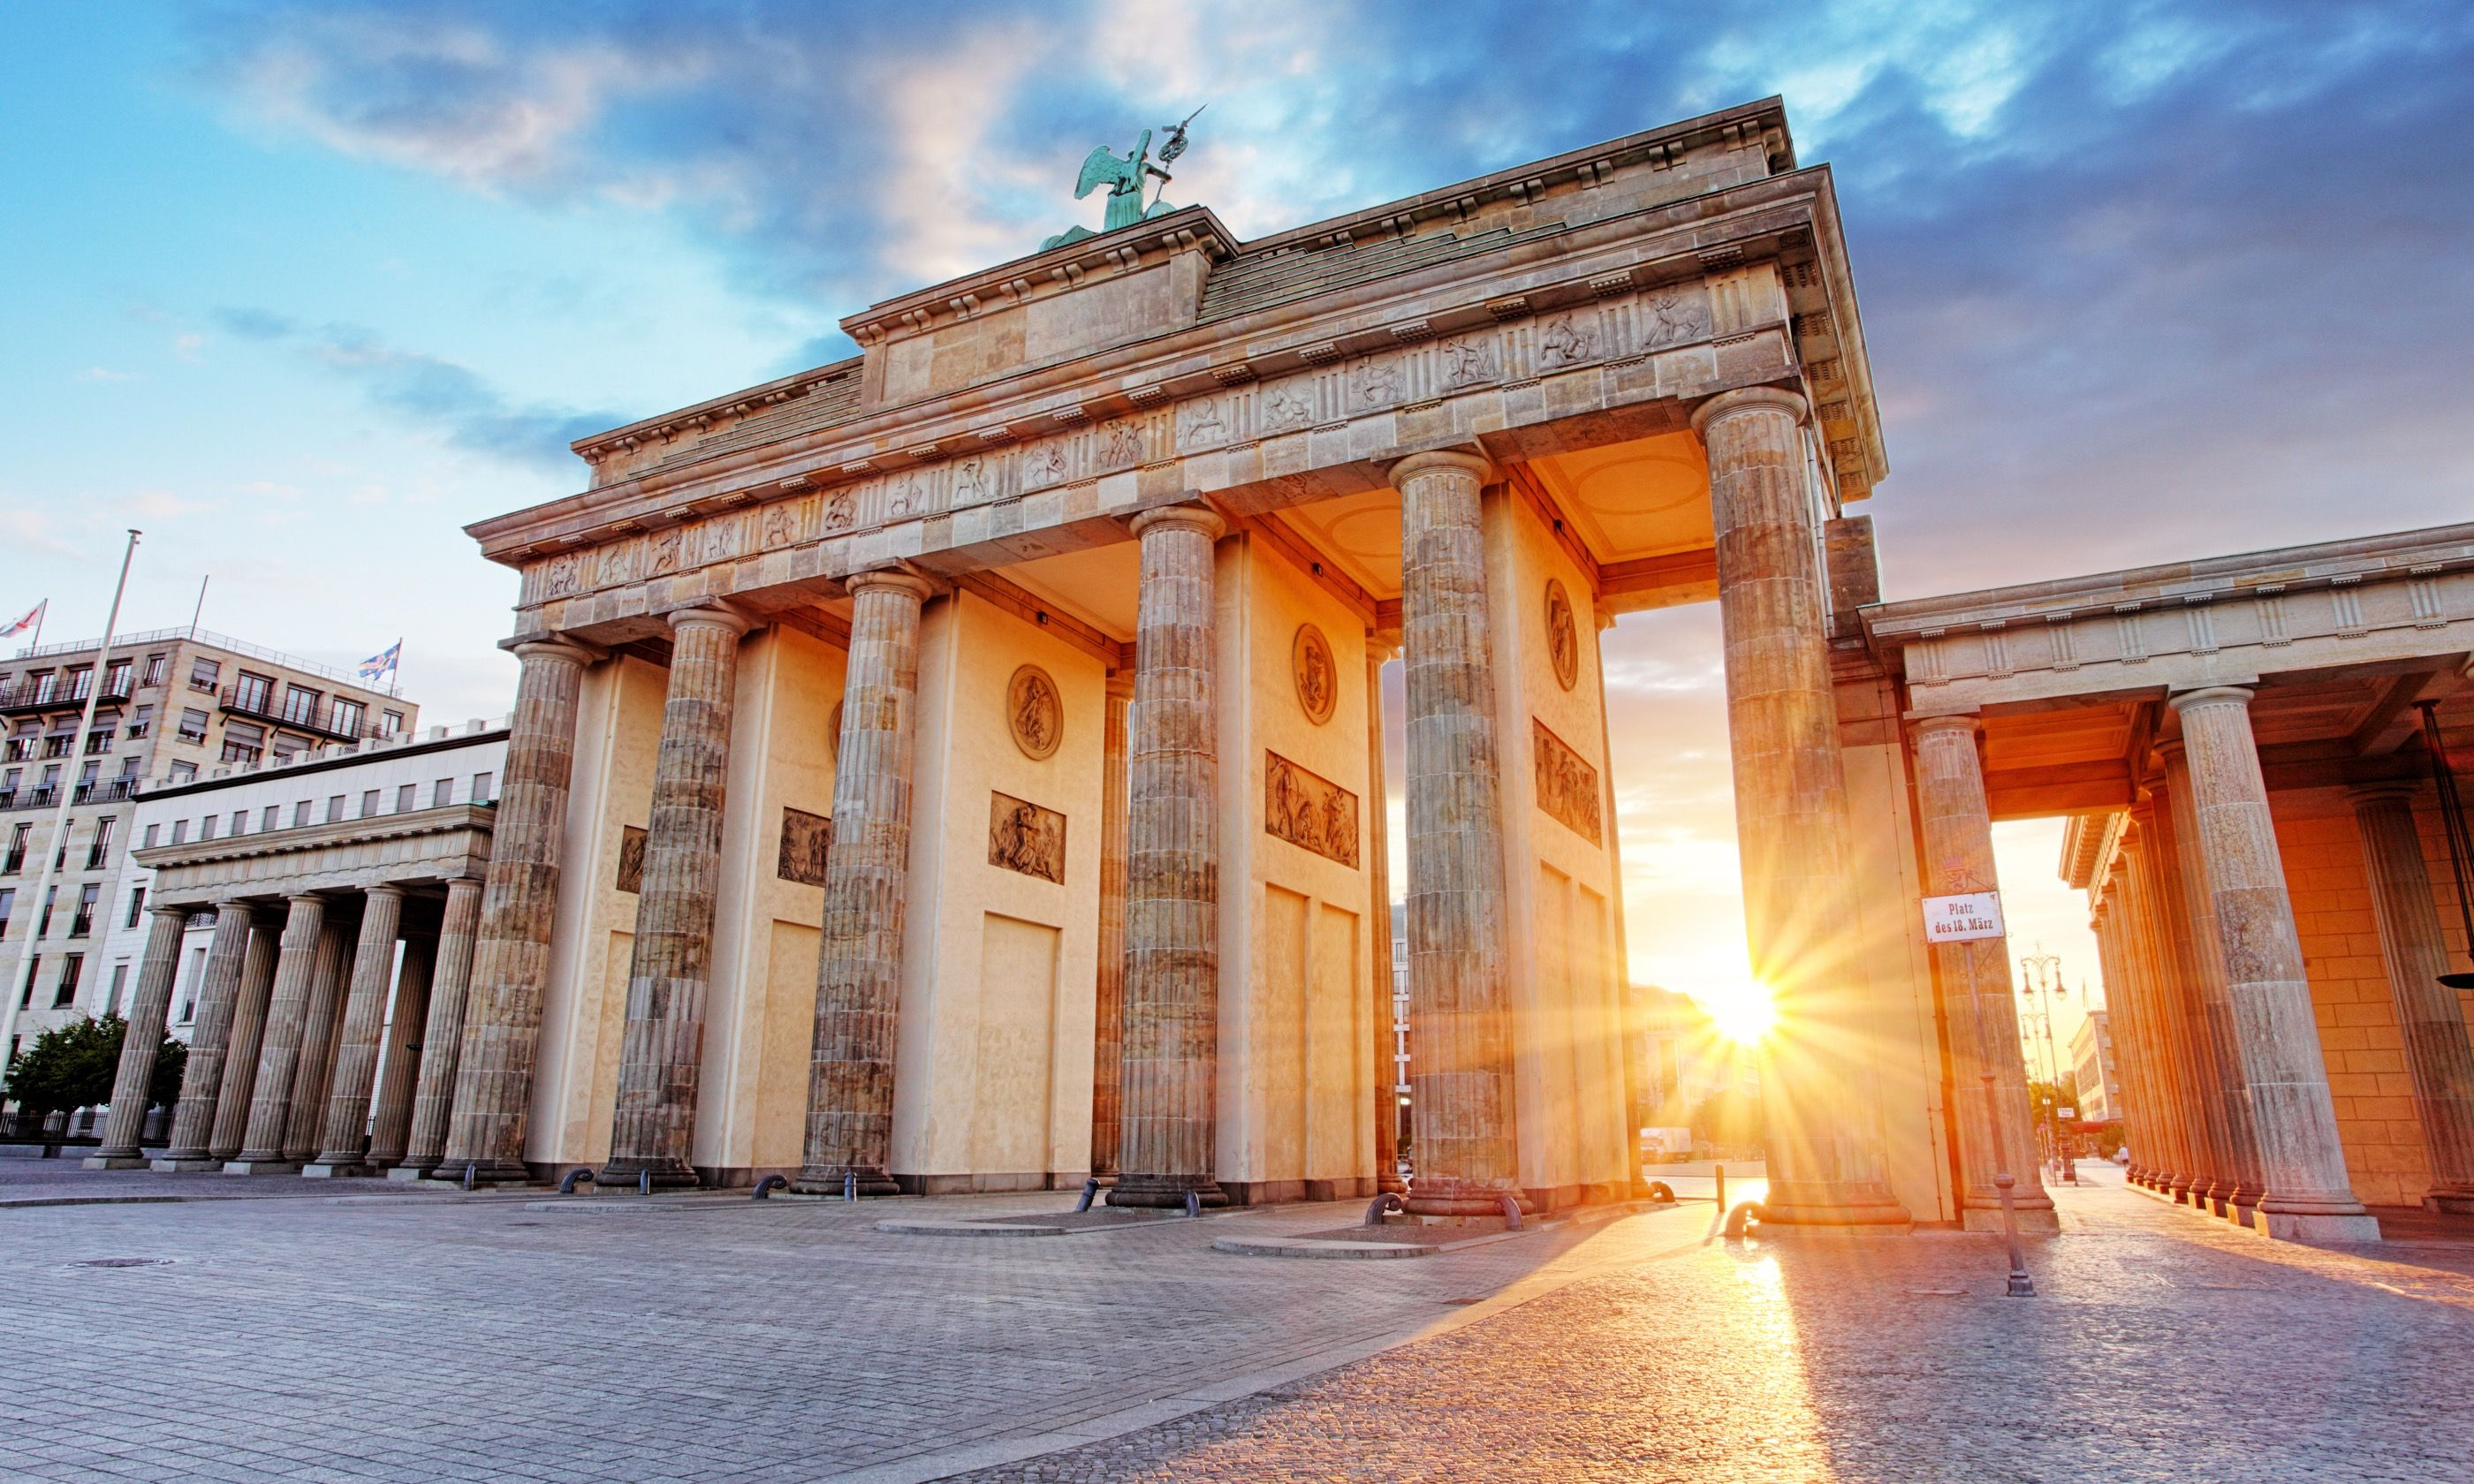 Sun shining through Brandenberg Gate (Shutterstock.com)